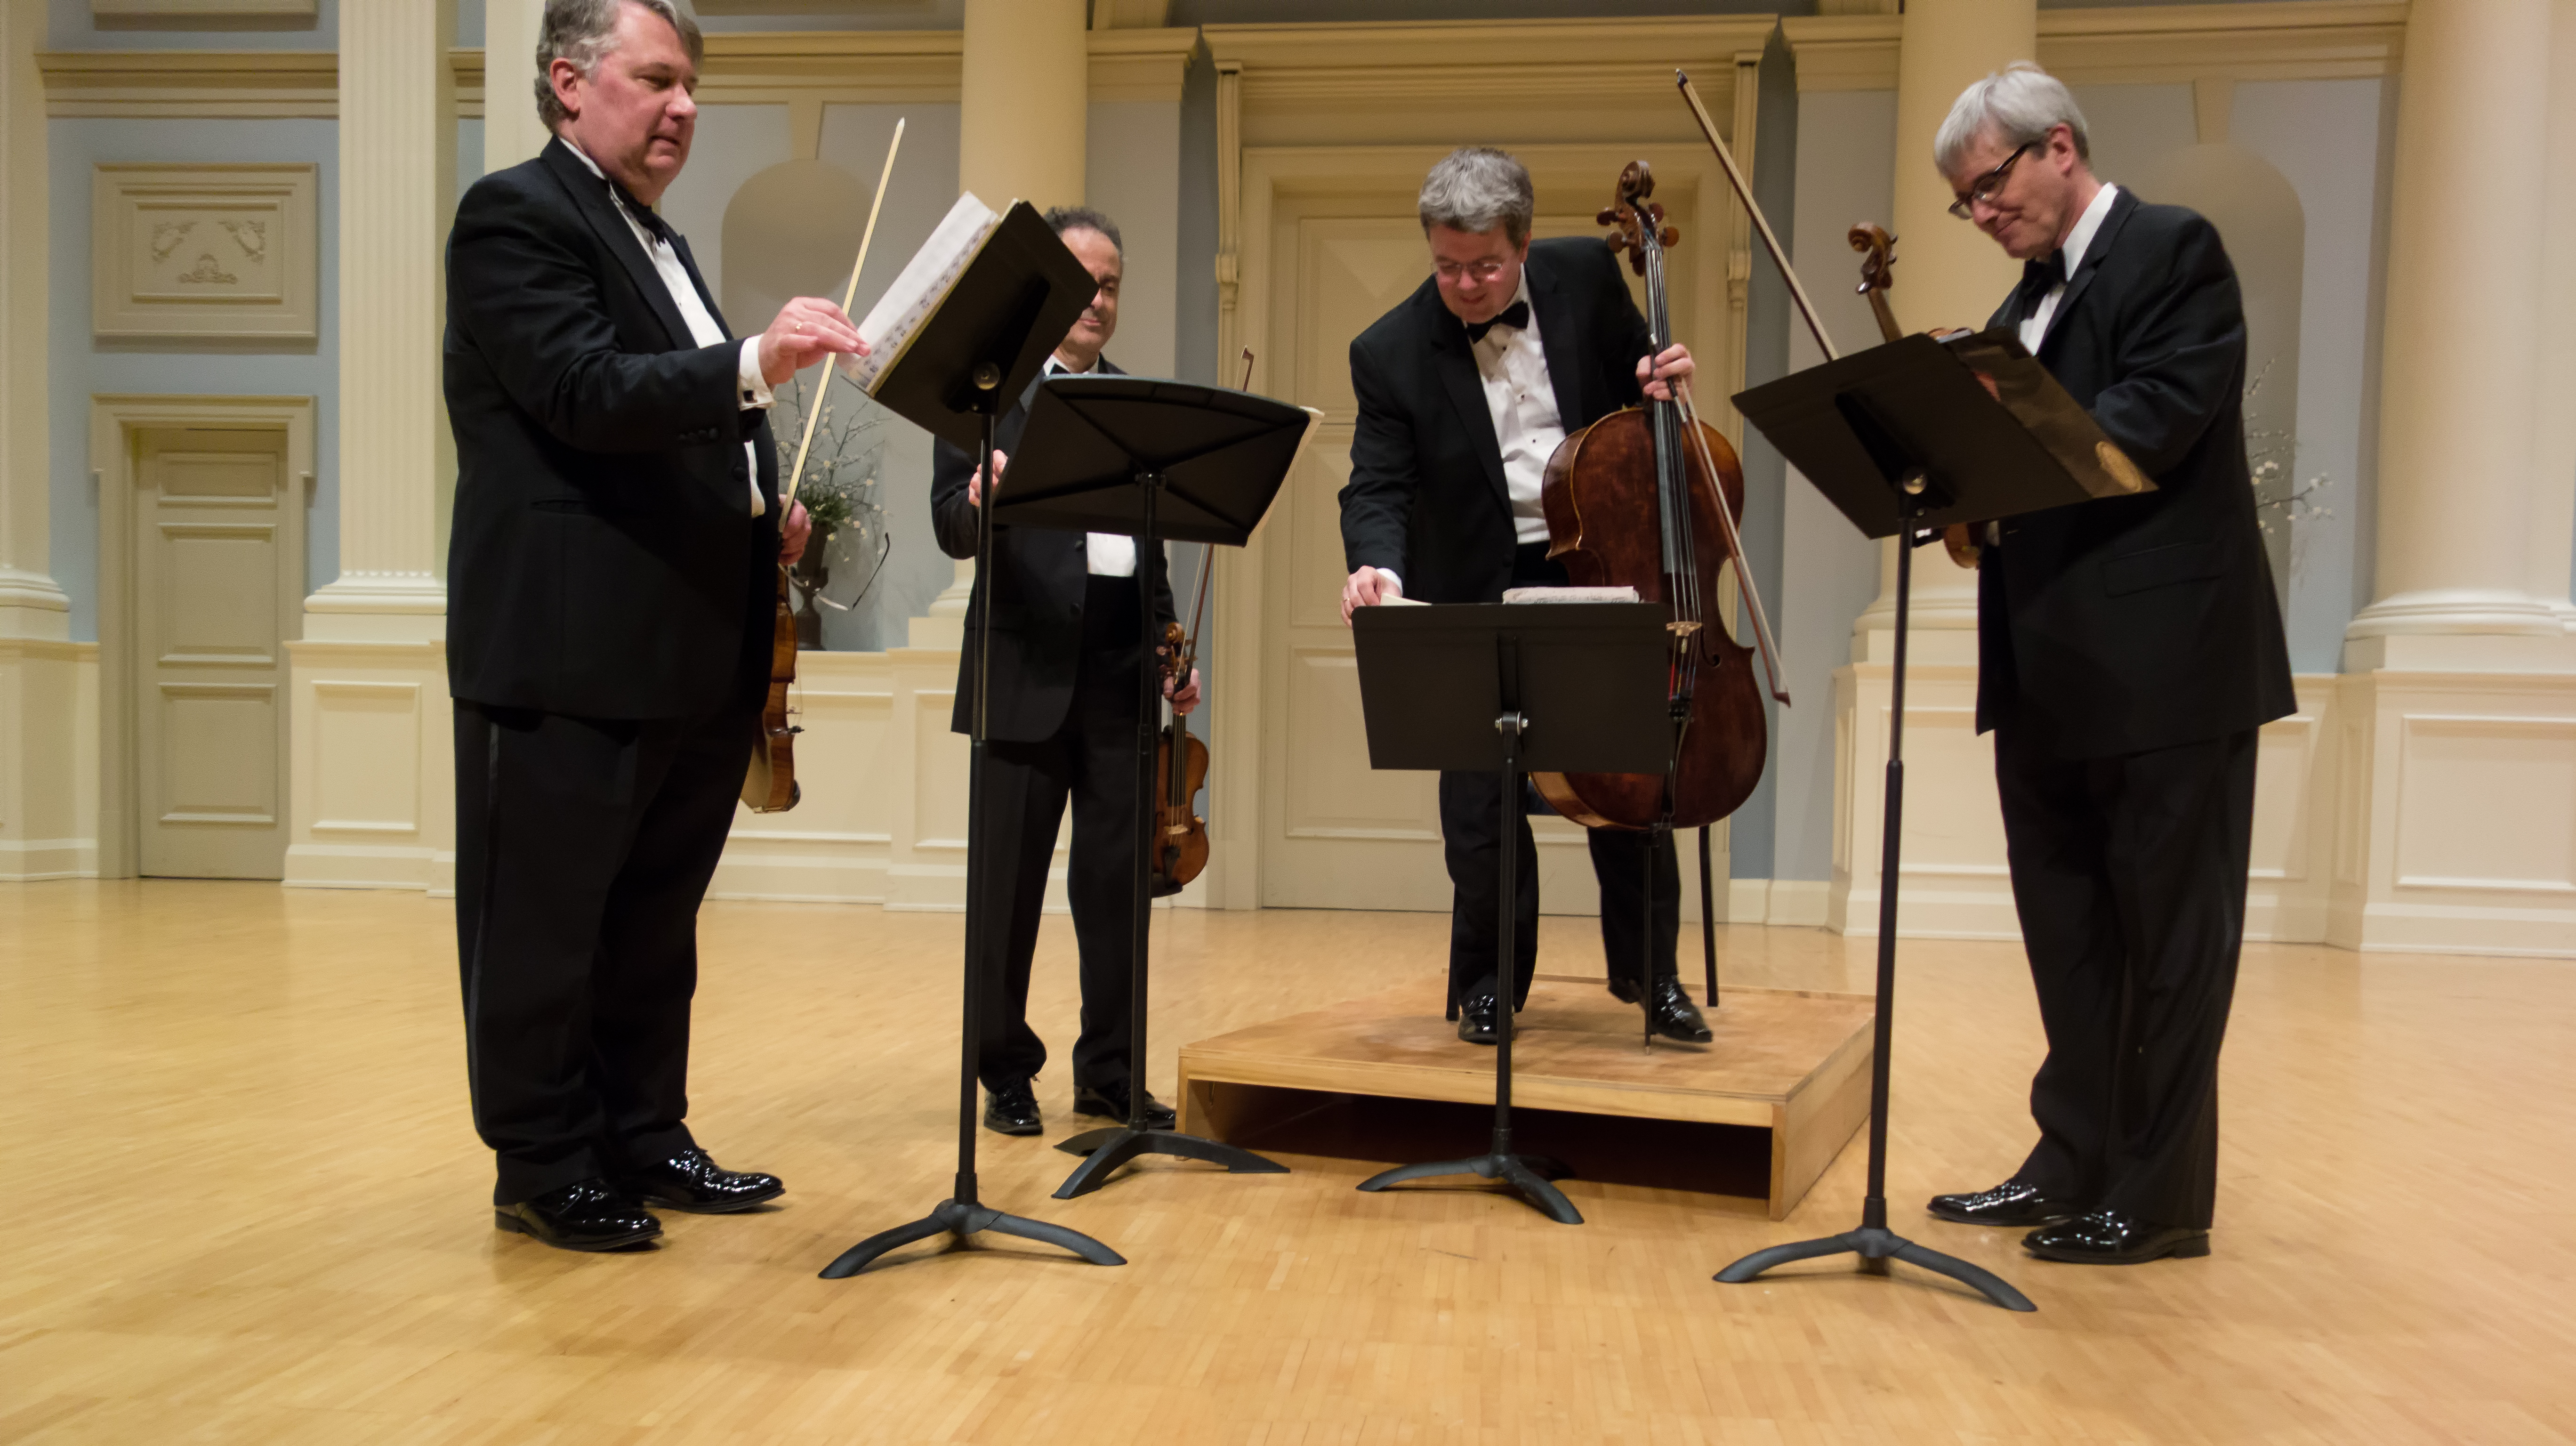 a review of a concert by the emerson quartet